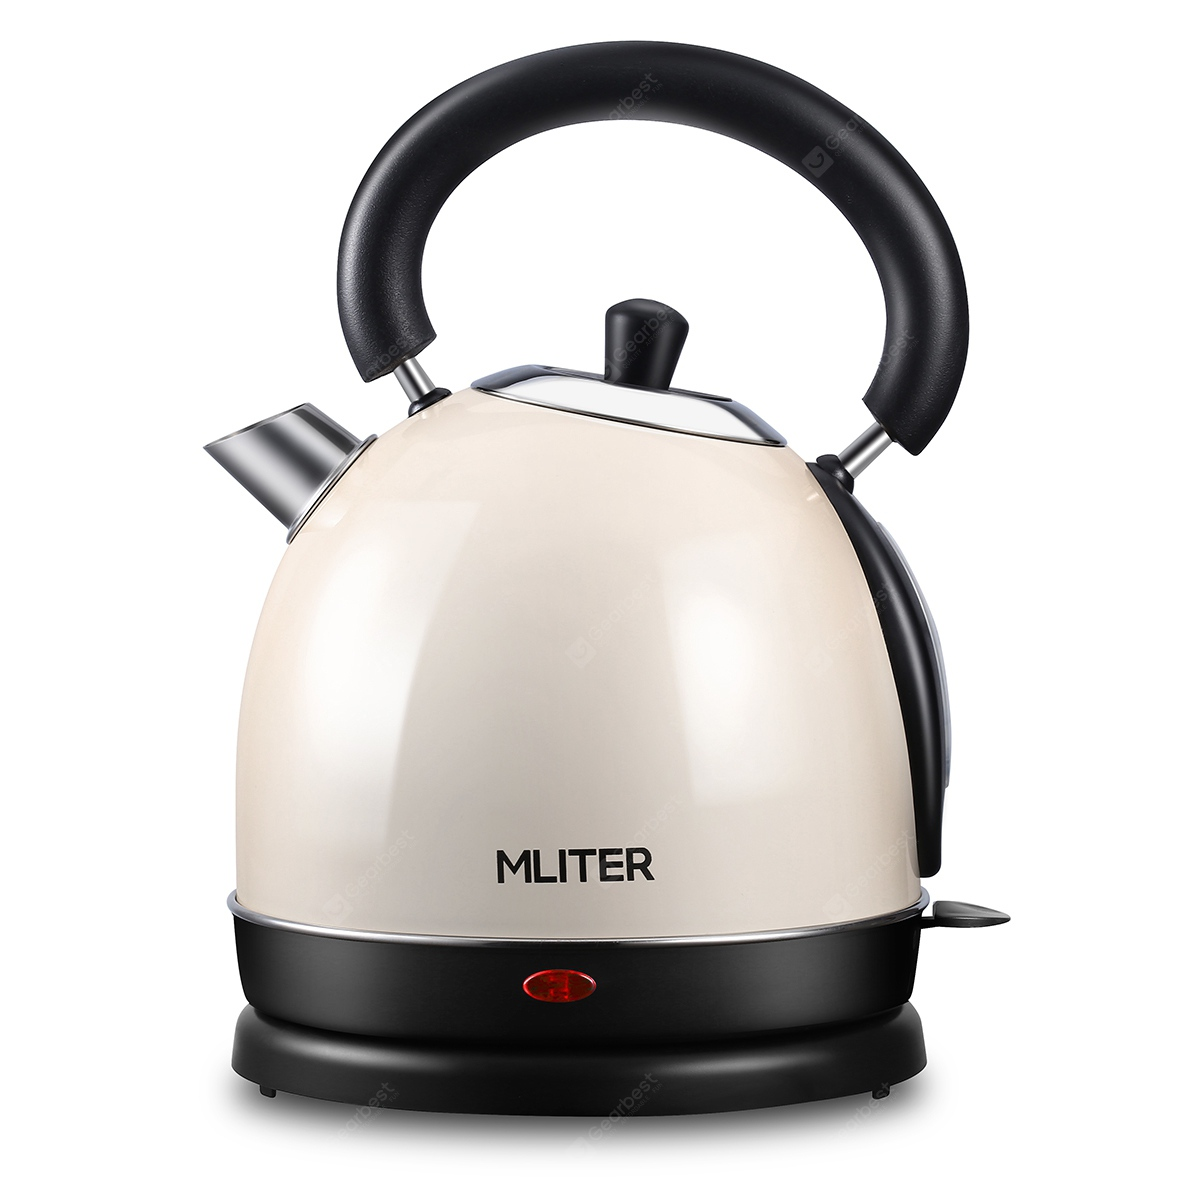 Mliter Electric Dome Kettle 3000W 1.8 Litre Cordless Stainless Steel Cream-coloured Boil Dry Protection - Beige